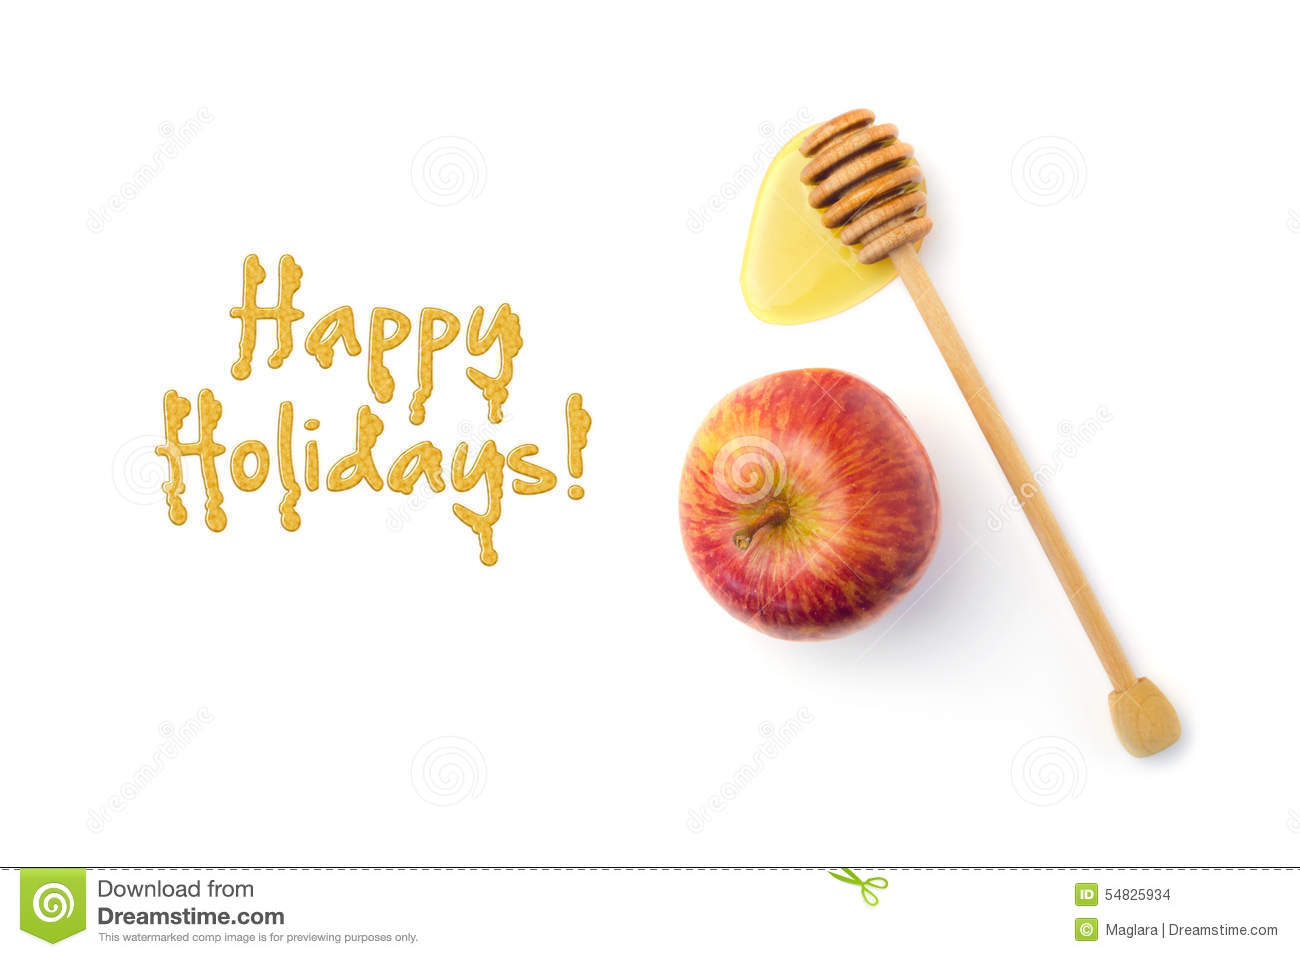 Jewish New Year Holiday Greeting Card Design With Apple ...